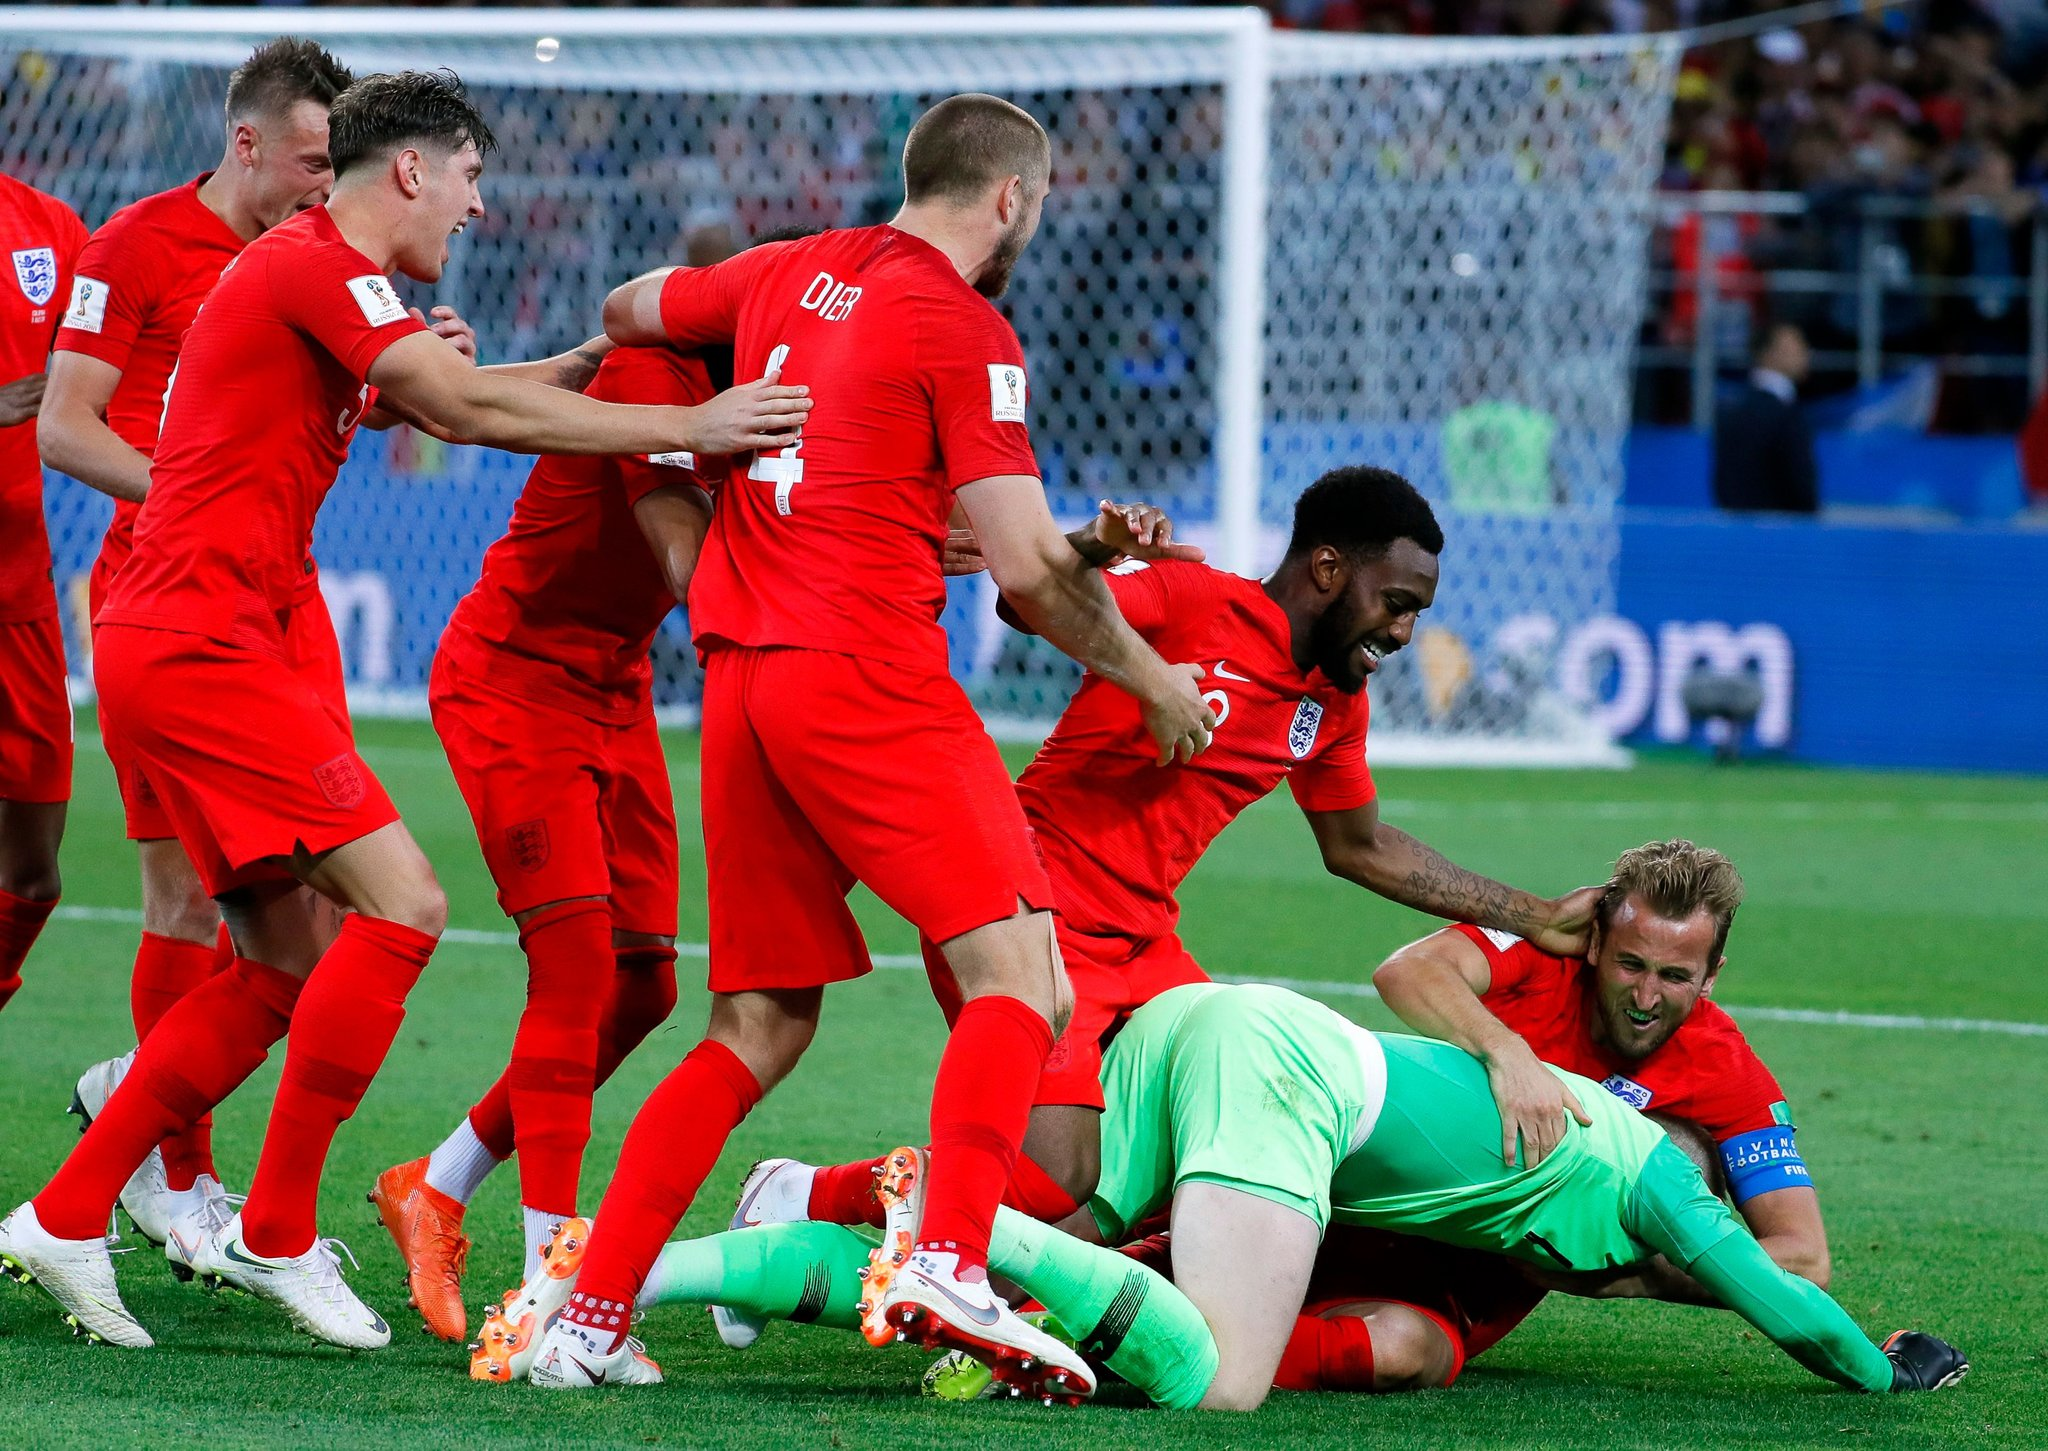 England celebrates after defeating Colombia in penalty kicks.